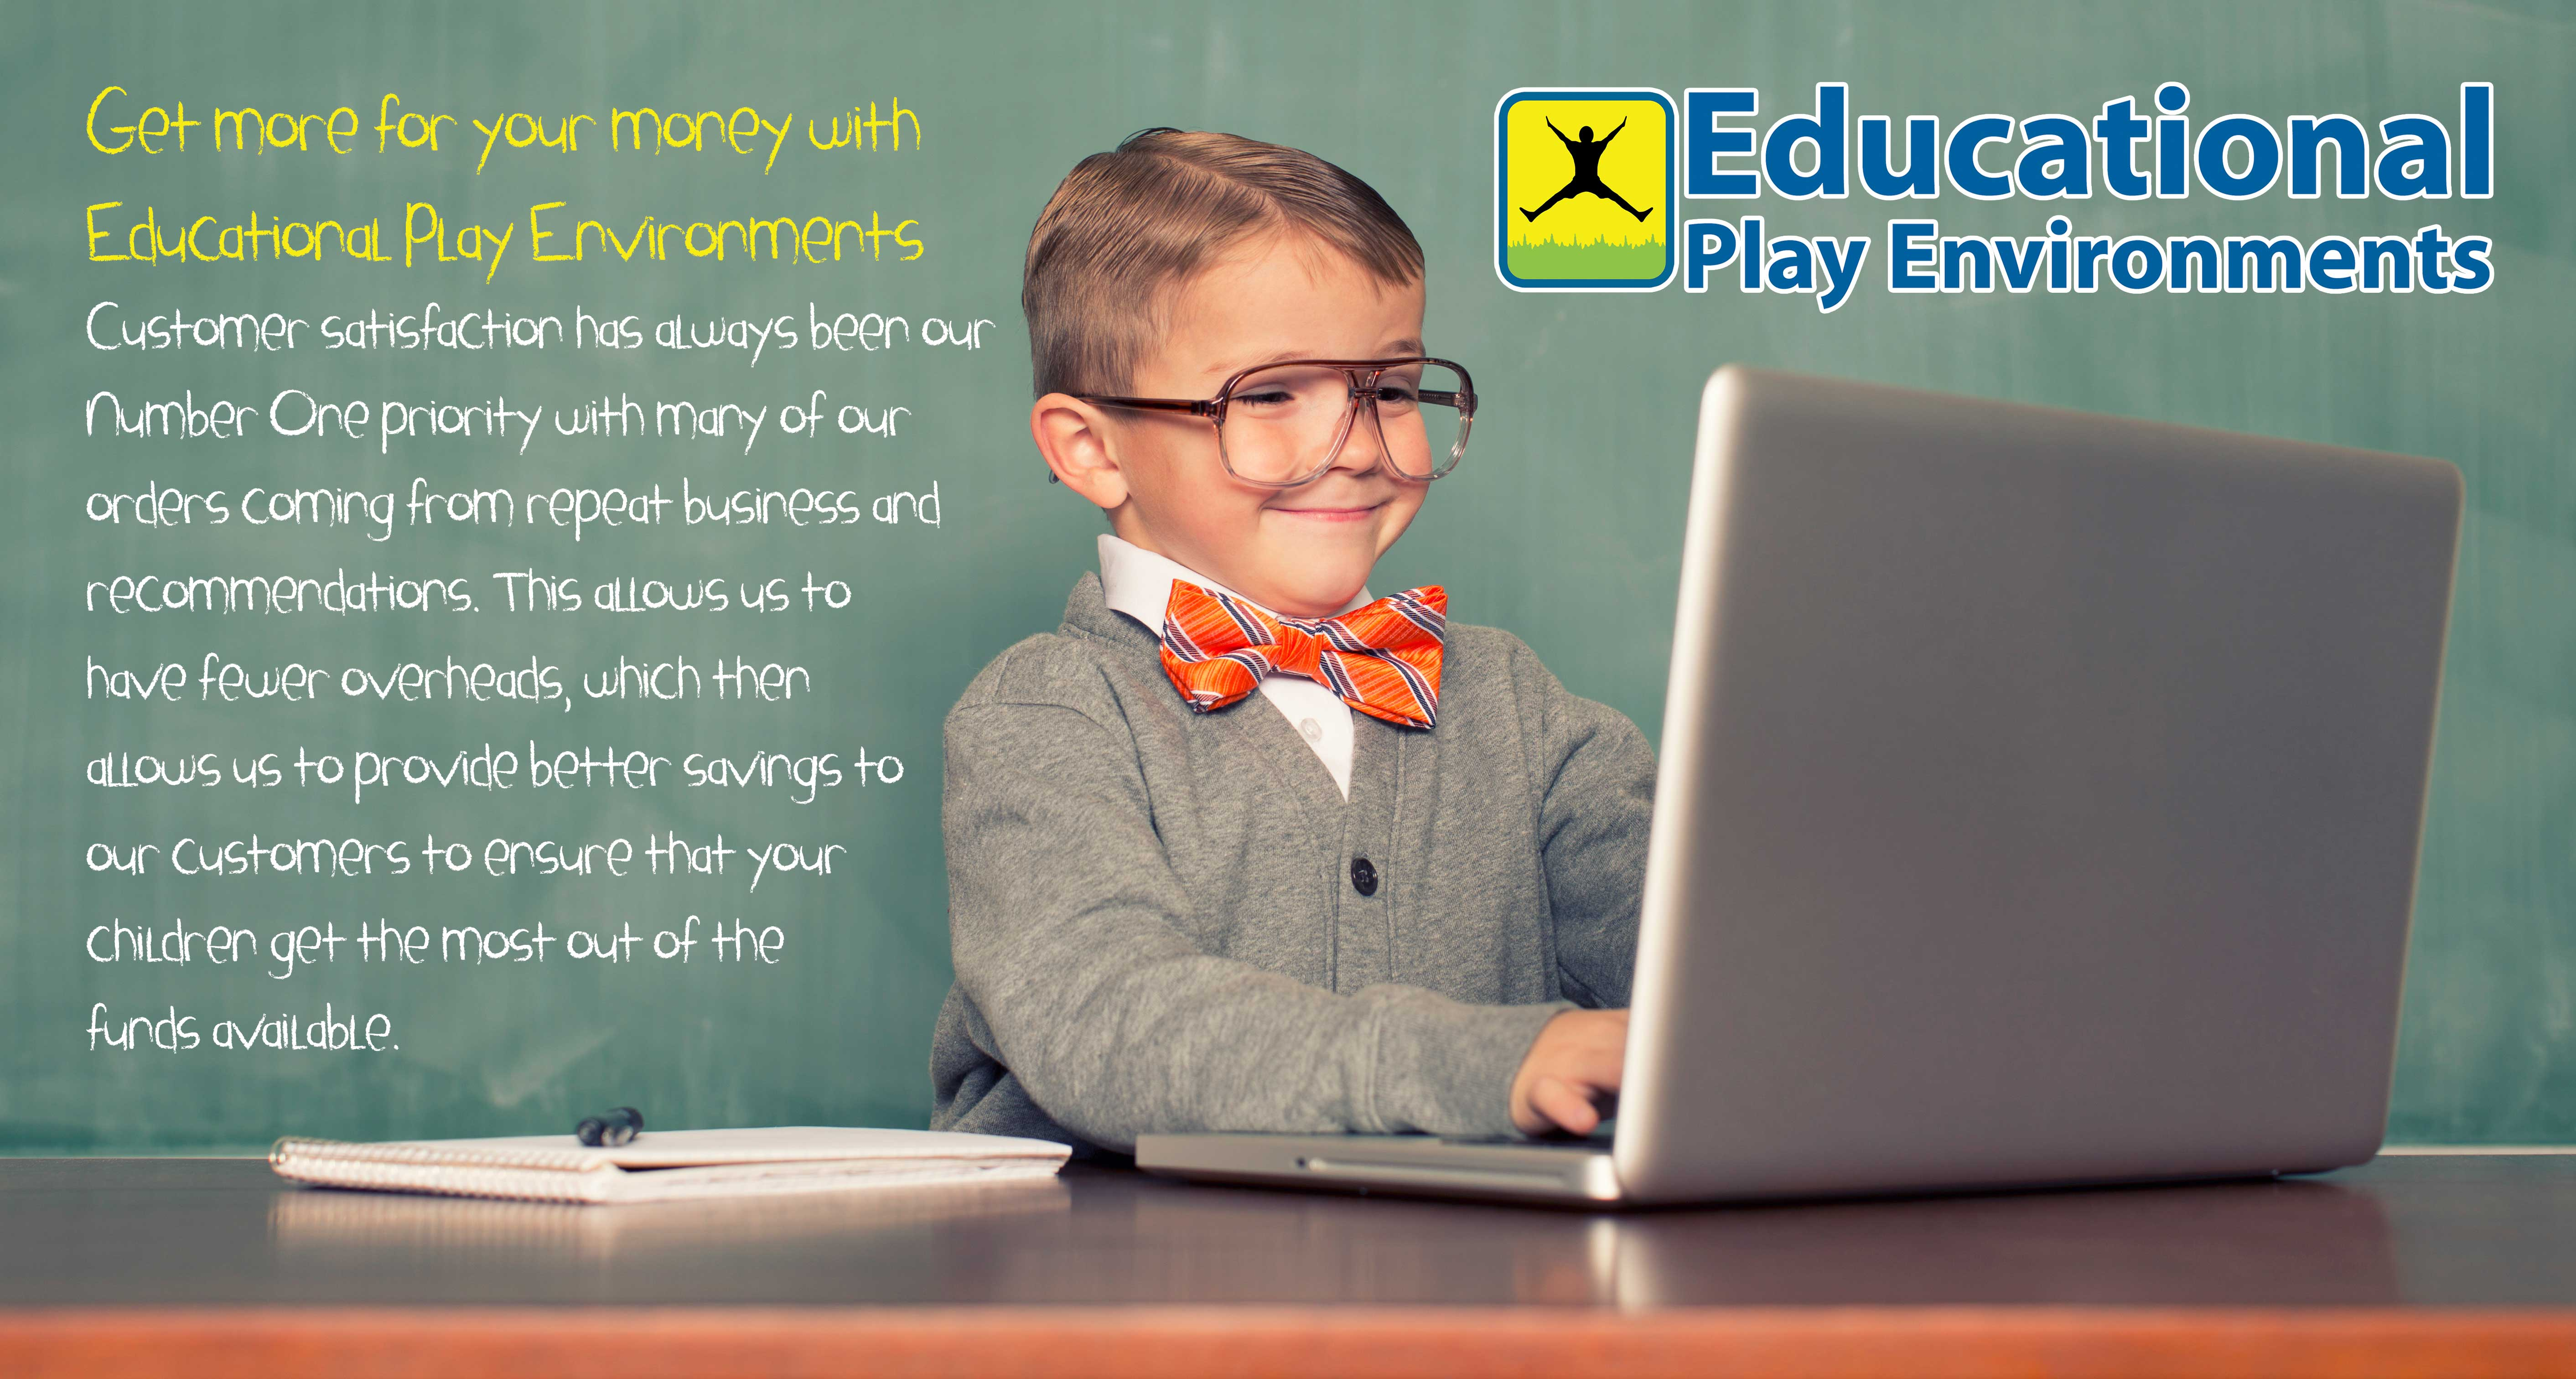 Get-more-for-your-money-with--Educational-Play-Environments